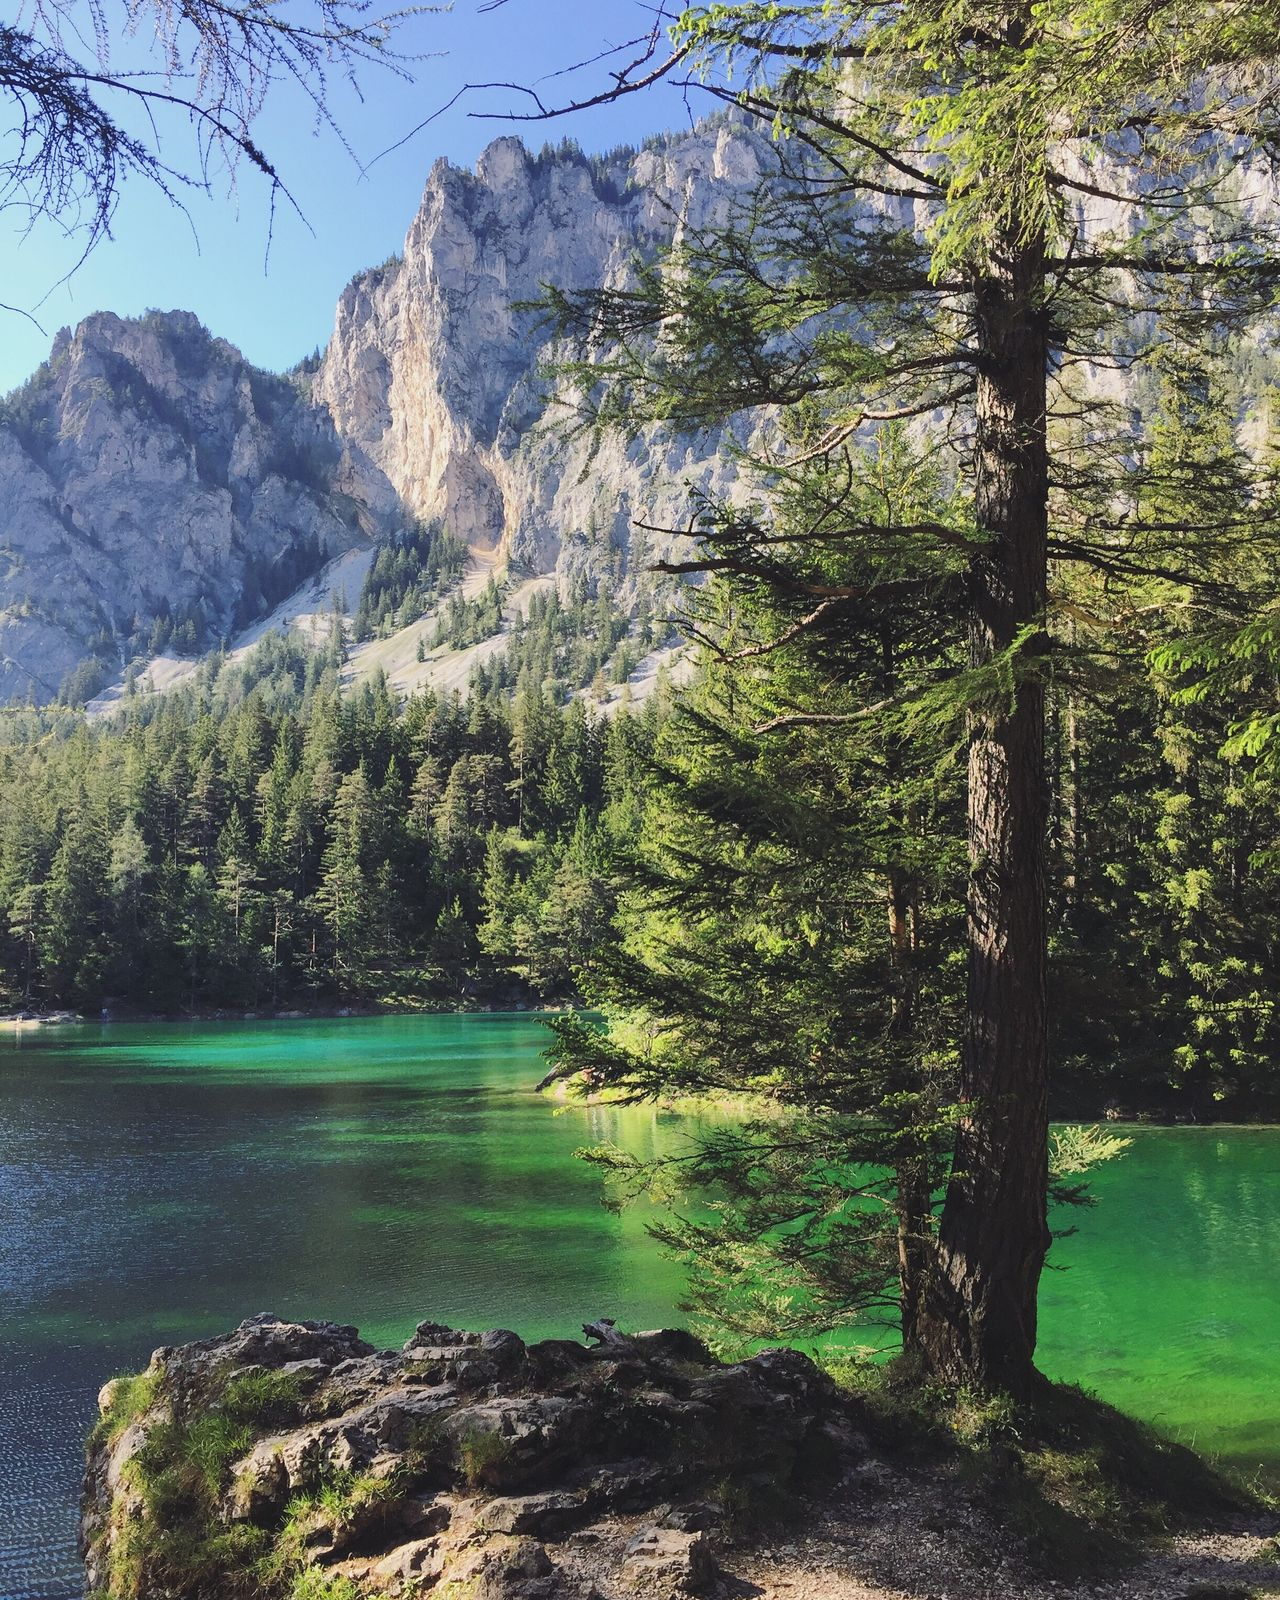 Tree Nature Scenics Mountain Beauty In Nature Lake Water Tranquility Forest Mountain Range Green Tranquil Scene Landscape